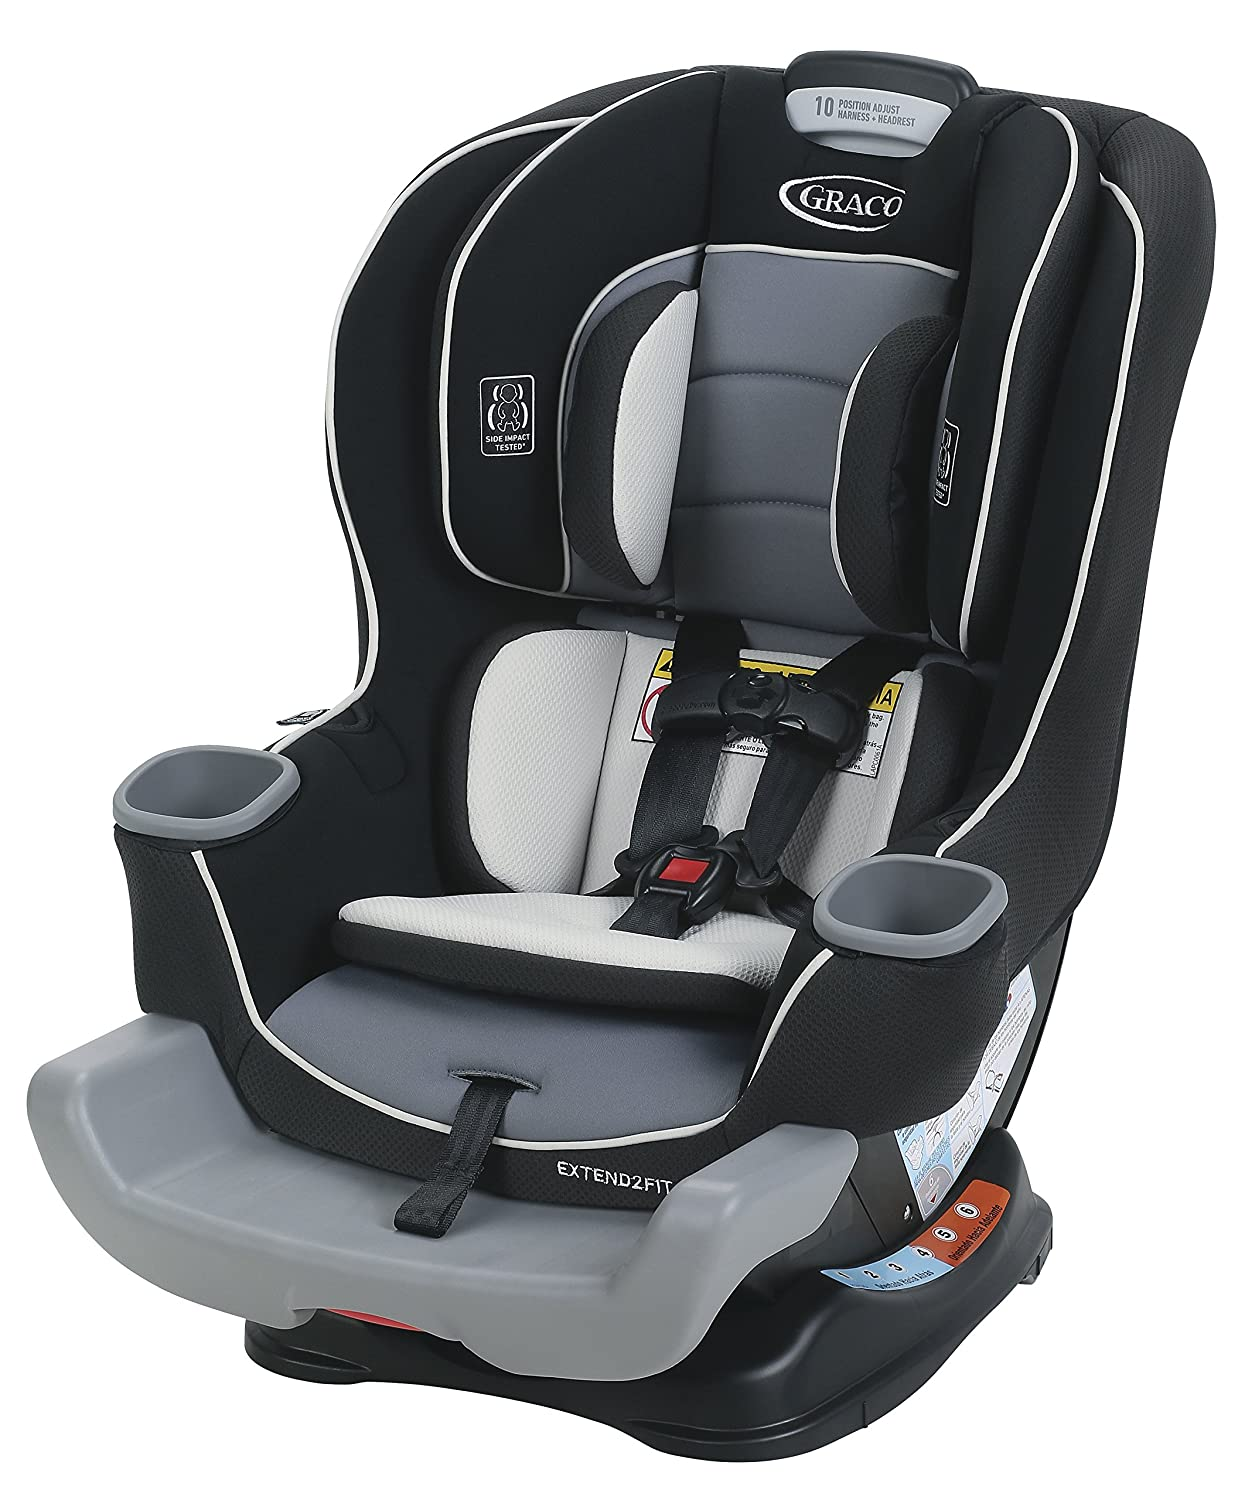 amazon com graco extend2fit convertible car seat gotham one size